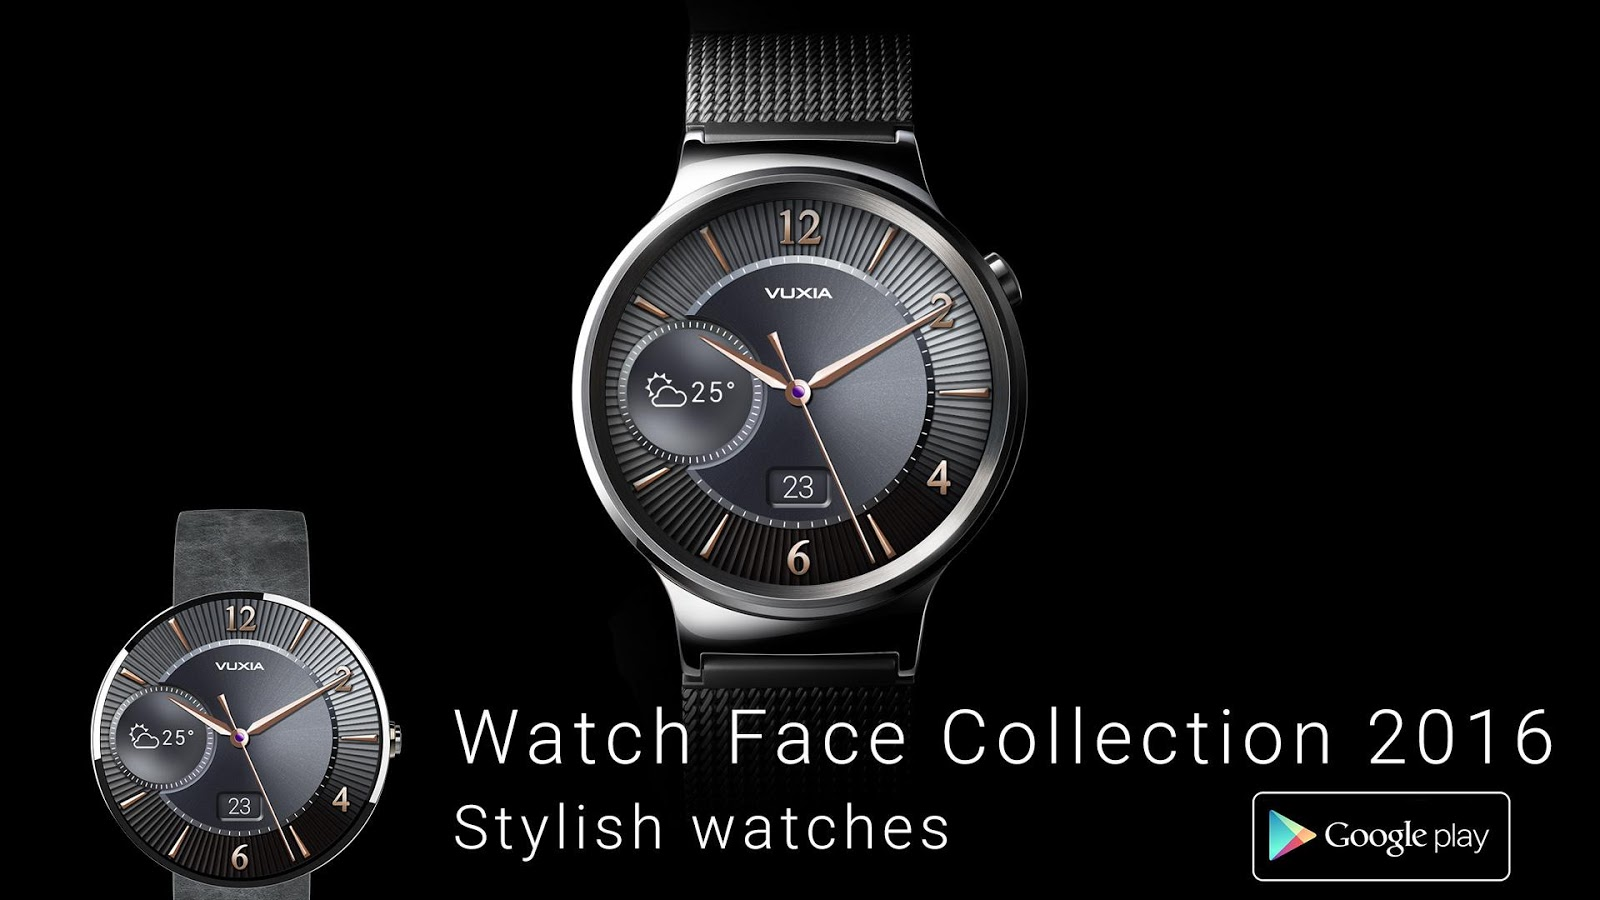 Wear face collection - Watch Face Collection 2016 Screenshot